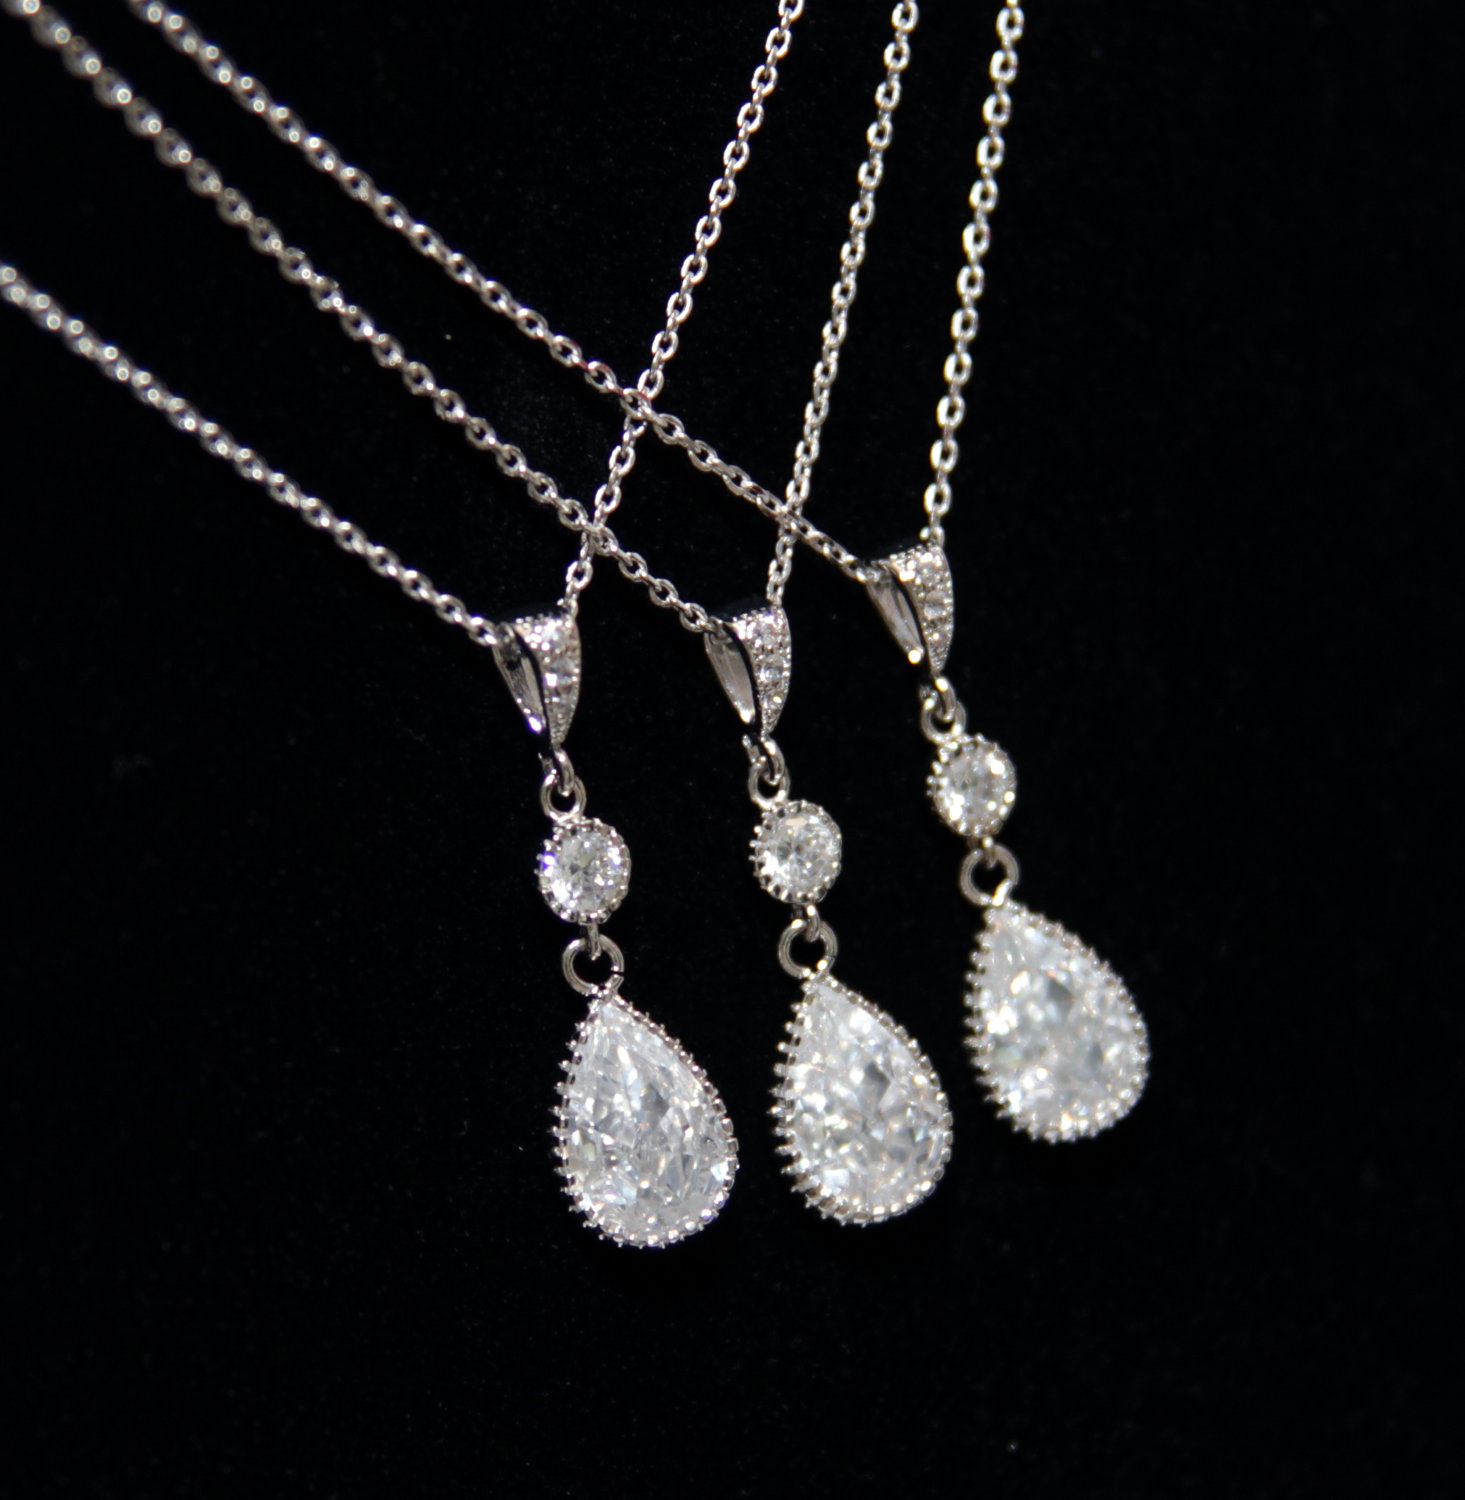 Teardrop Necklace by Glitz & Love